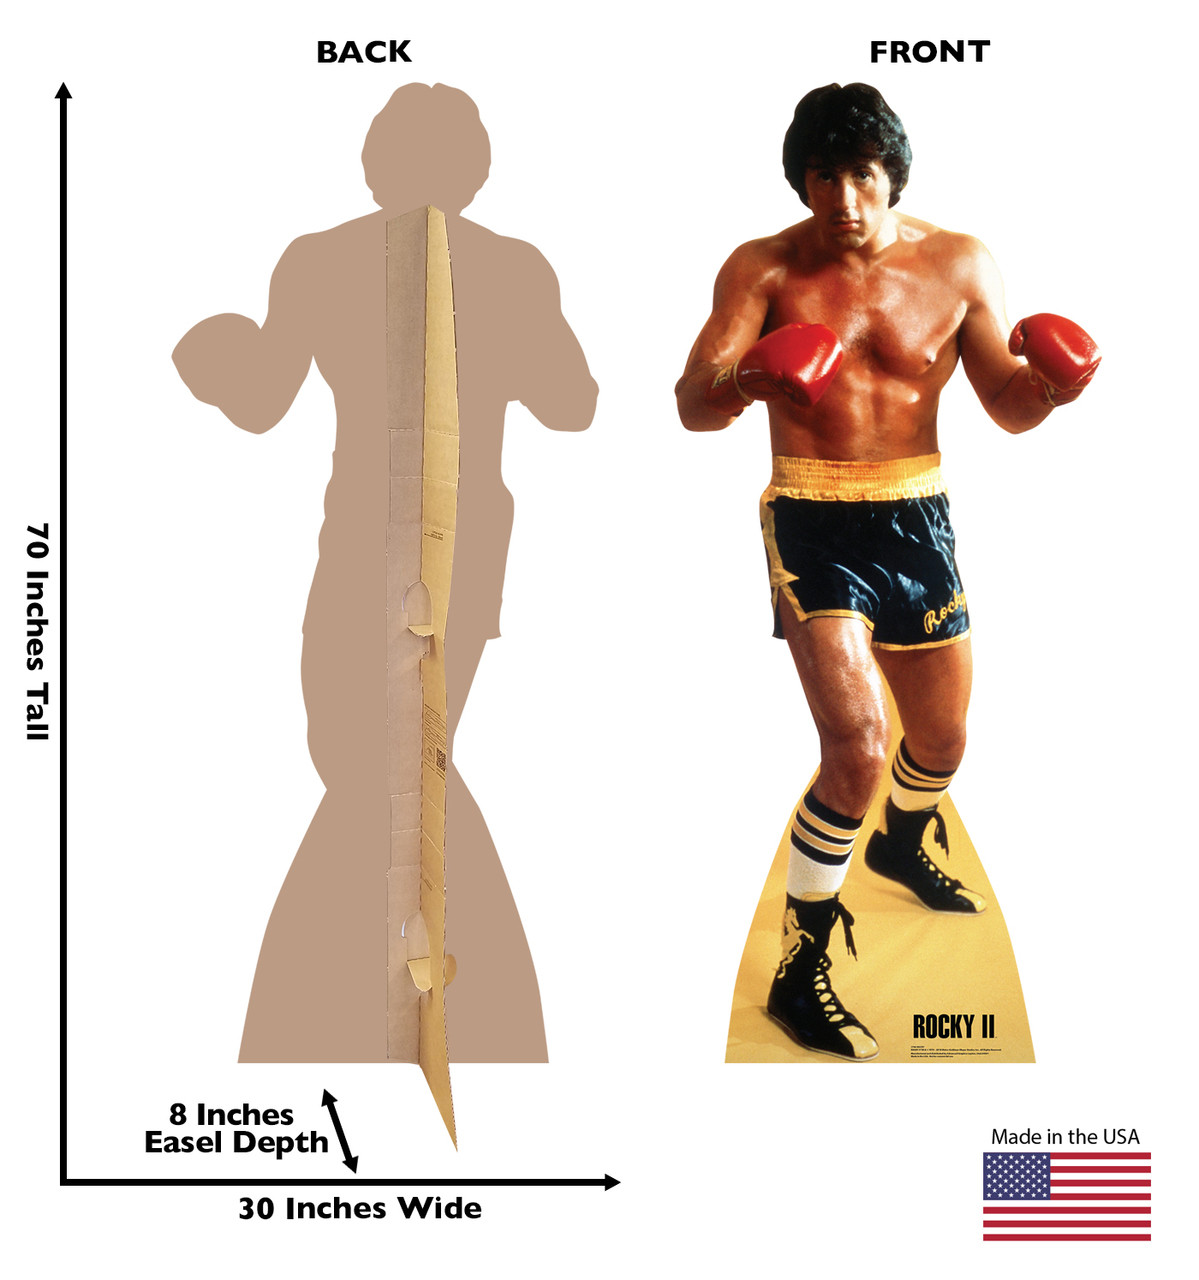 Life-size cardboard standee of Rocky from Rocky II. Back and front with dimensions.